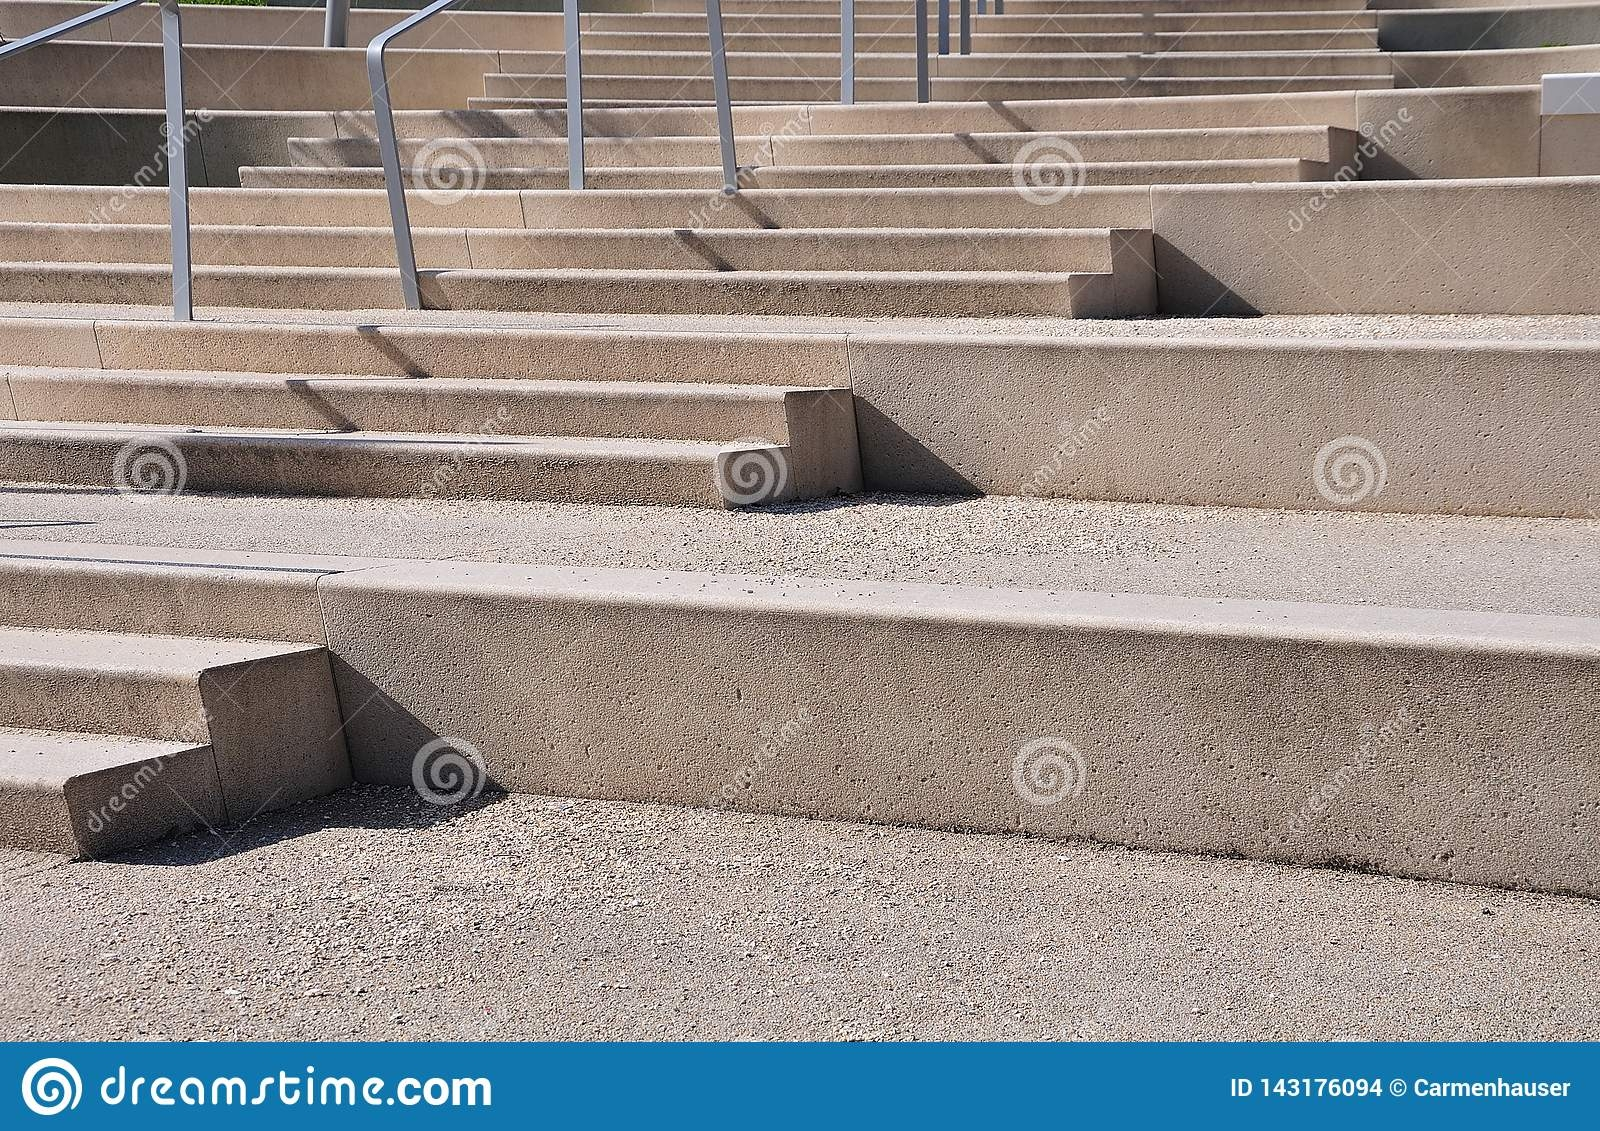 Large Concrete Steps With Railing Of Stainless Steel Stock Photo | Building A Handrail For Concrete Stairs | Deck Railing | Deck | Steel Handrail | Porch | Outdoor Stair